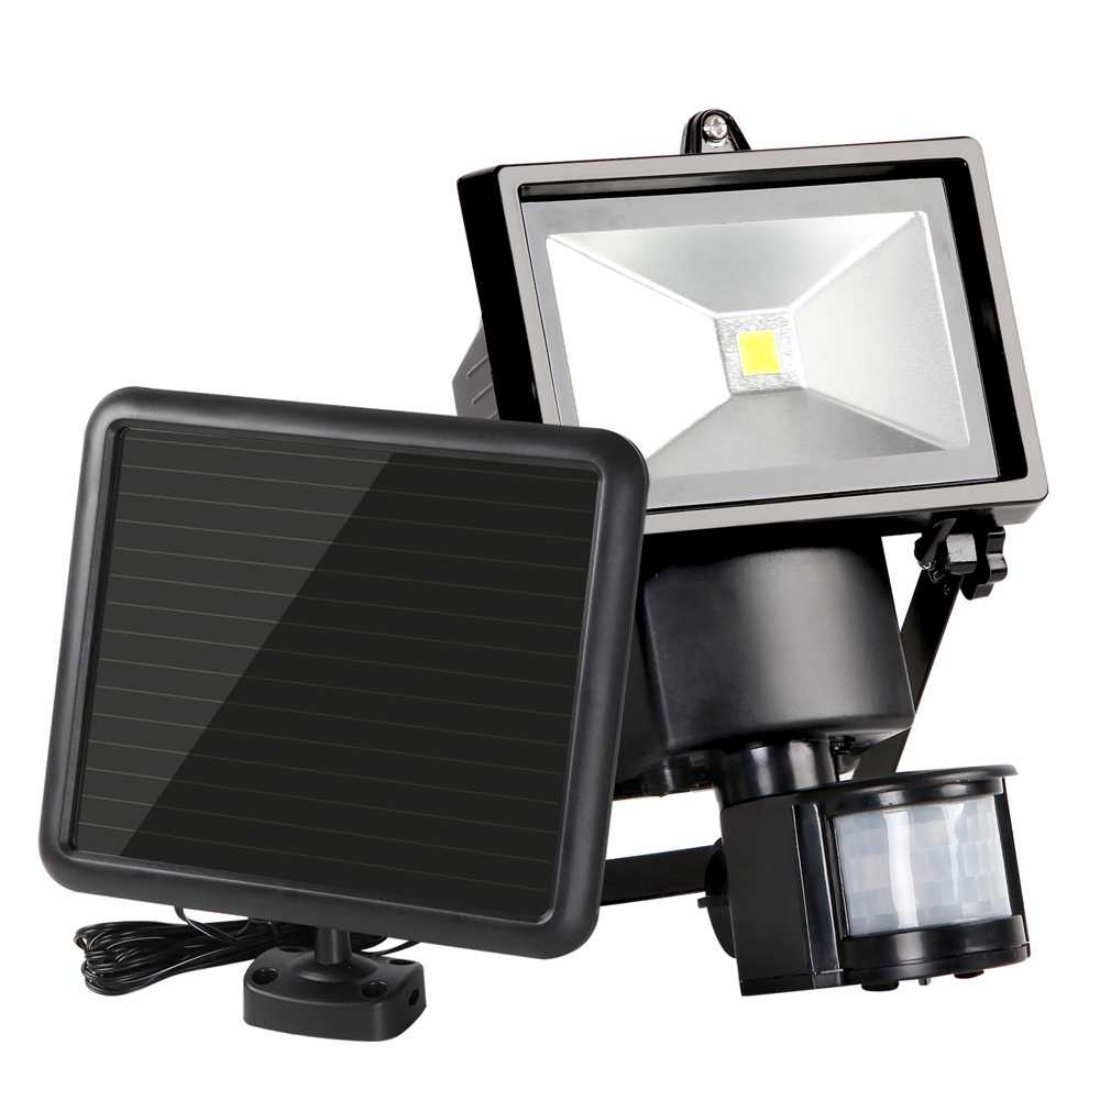 5W COB LED Solar Motion Detection Sensor Security Light